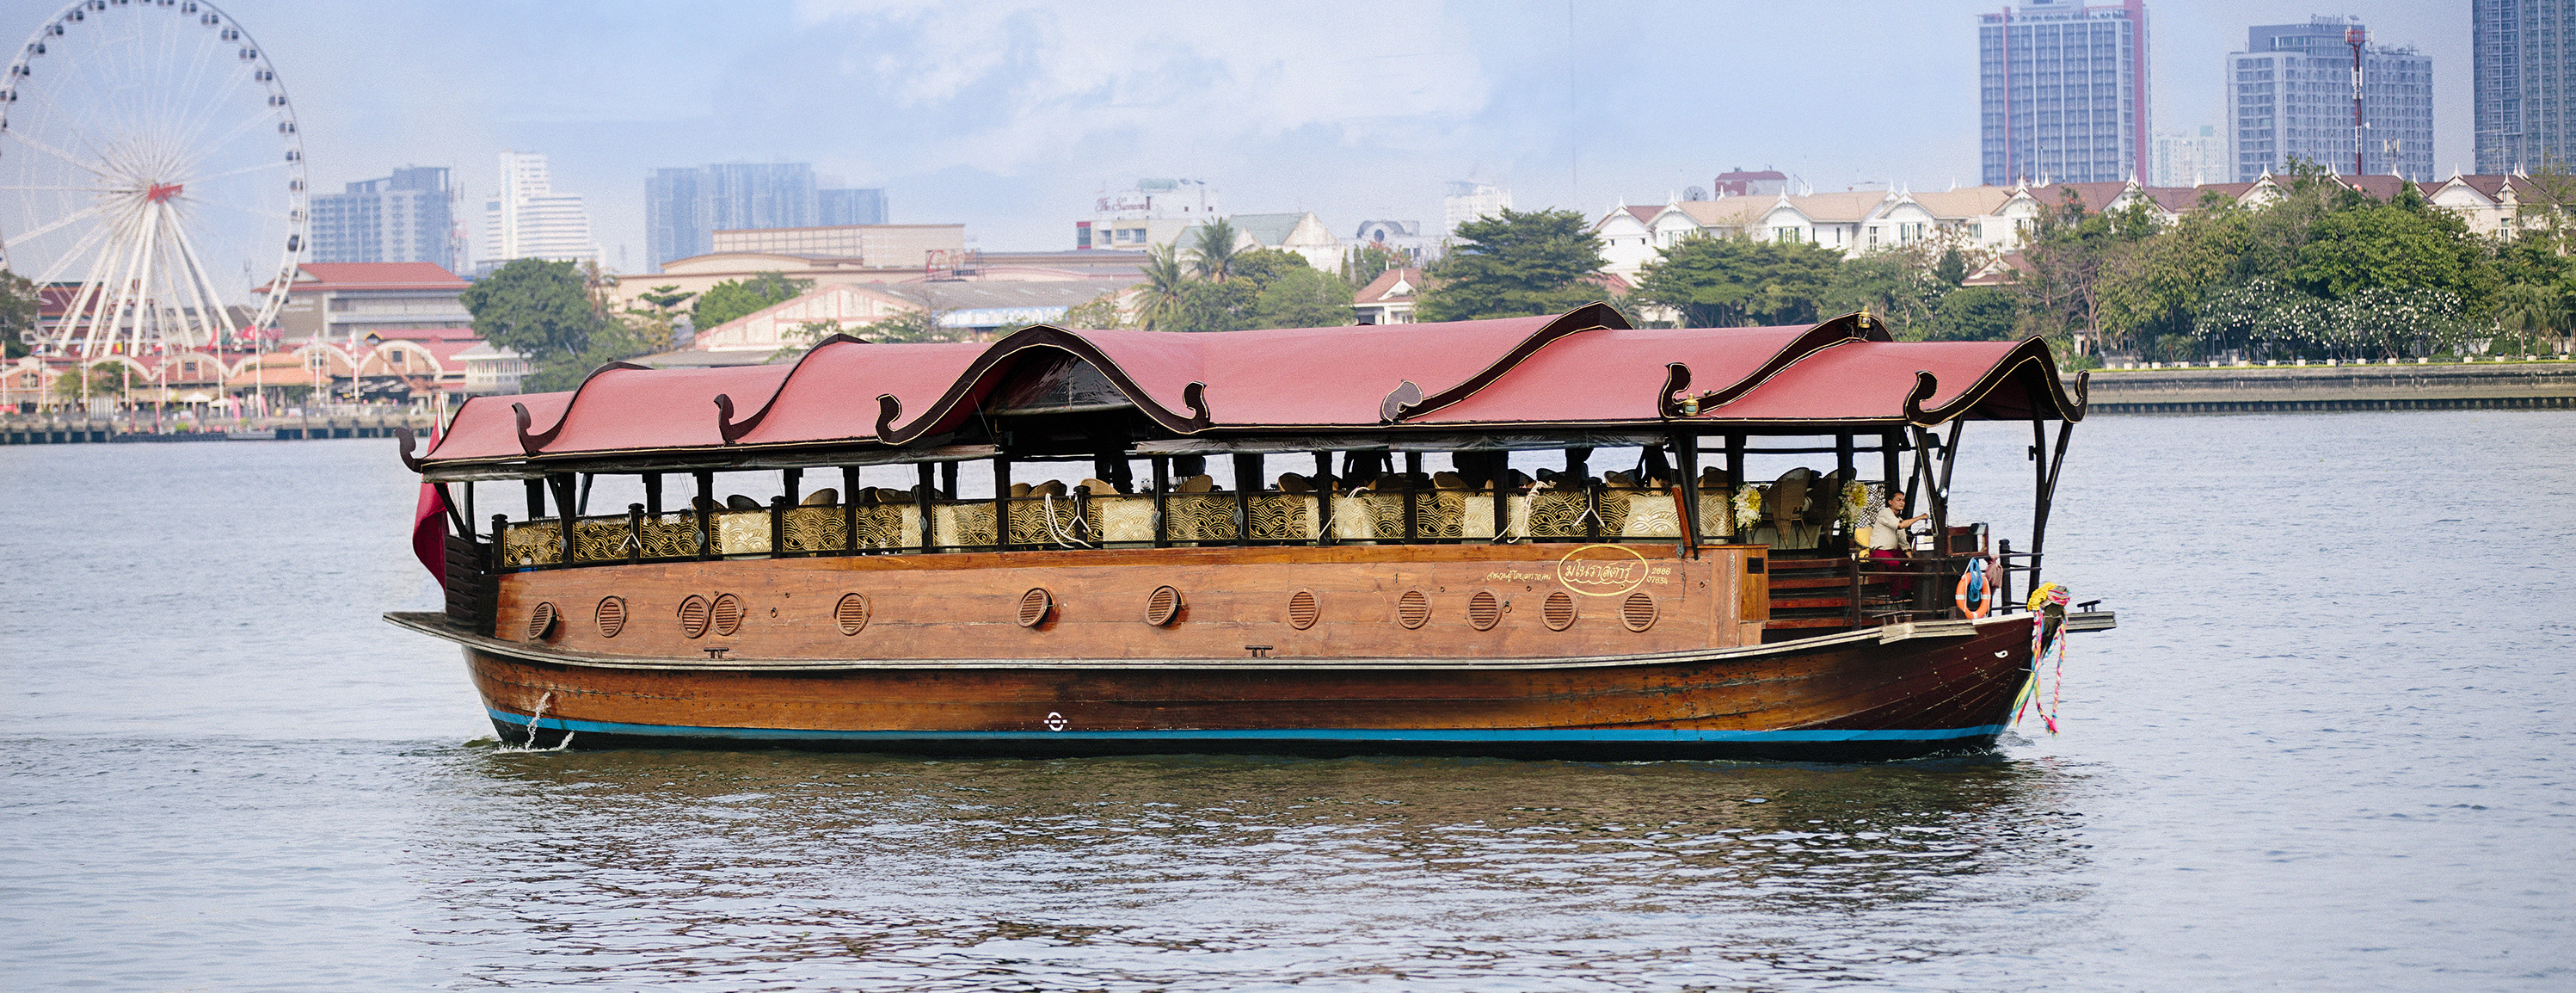 Manohra_River_Cruise_Bangkok